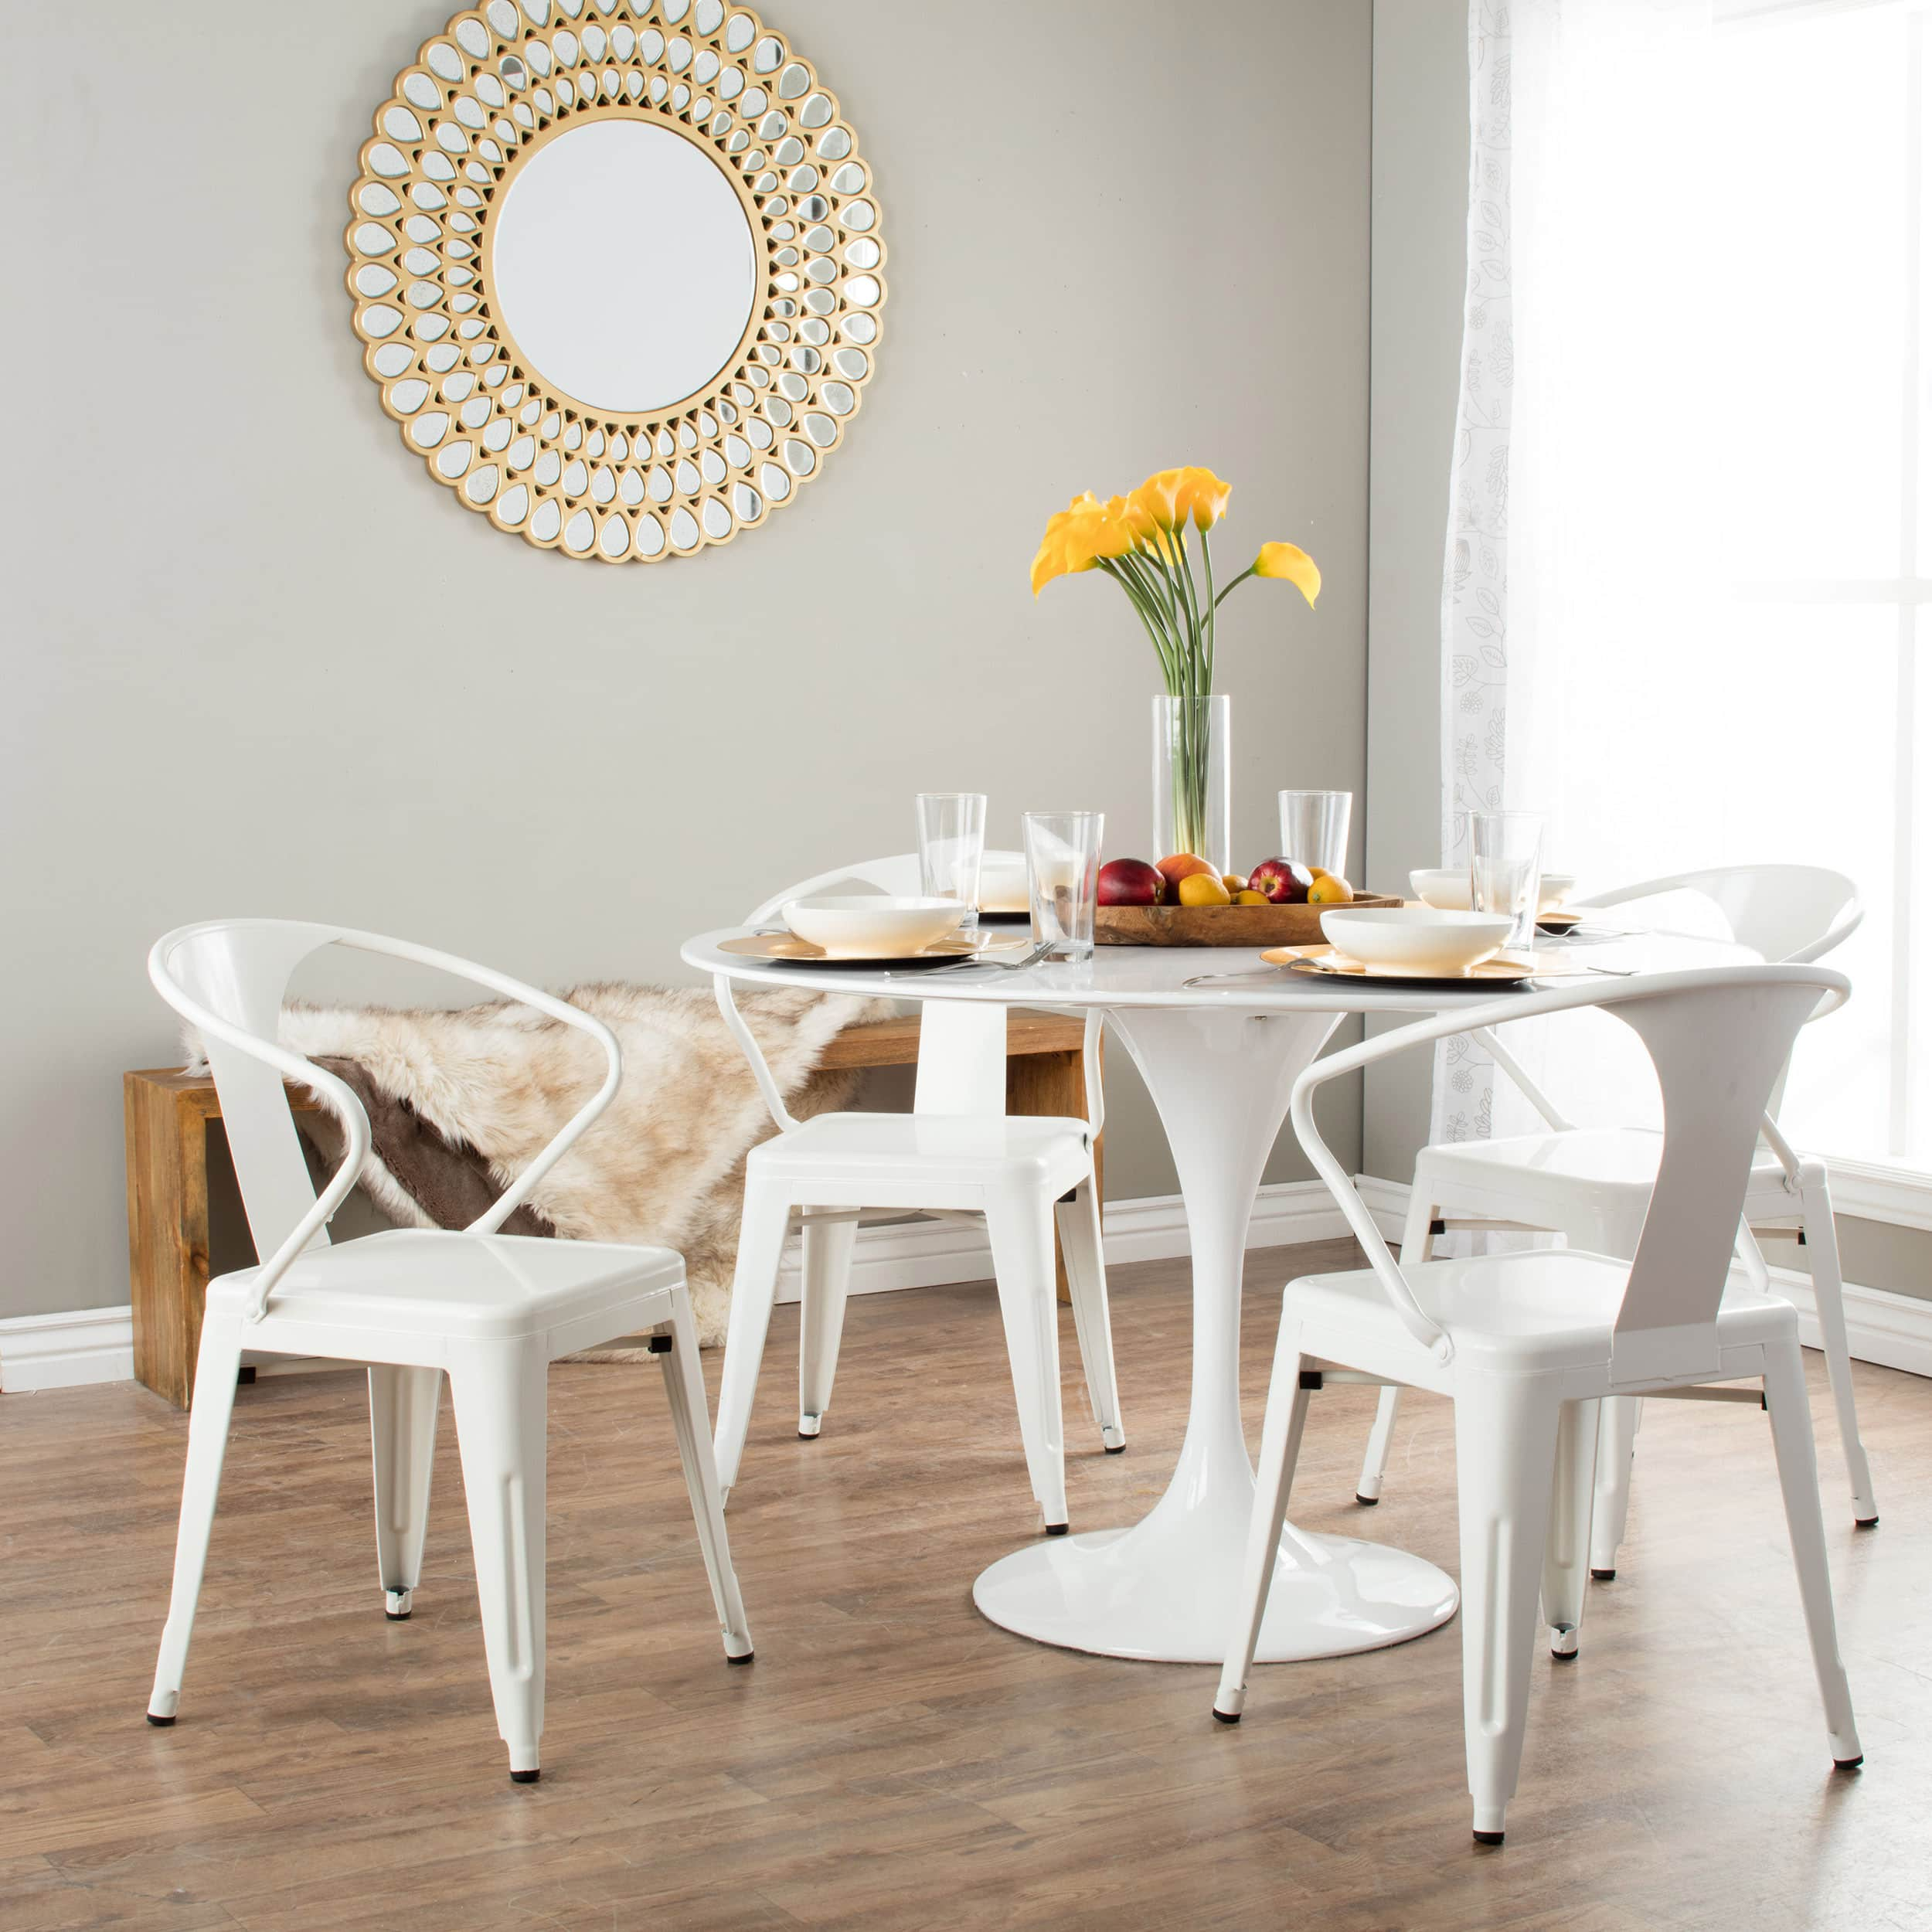 Buy Dining Room Furniture Online: Buy Kitchen & Dining Room Chairs Online At Overstock.com